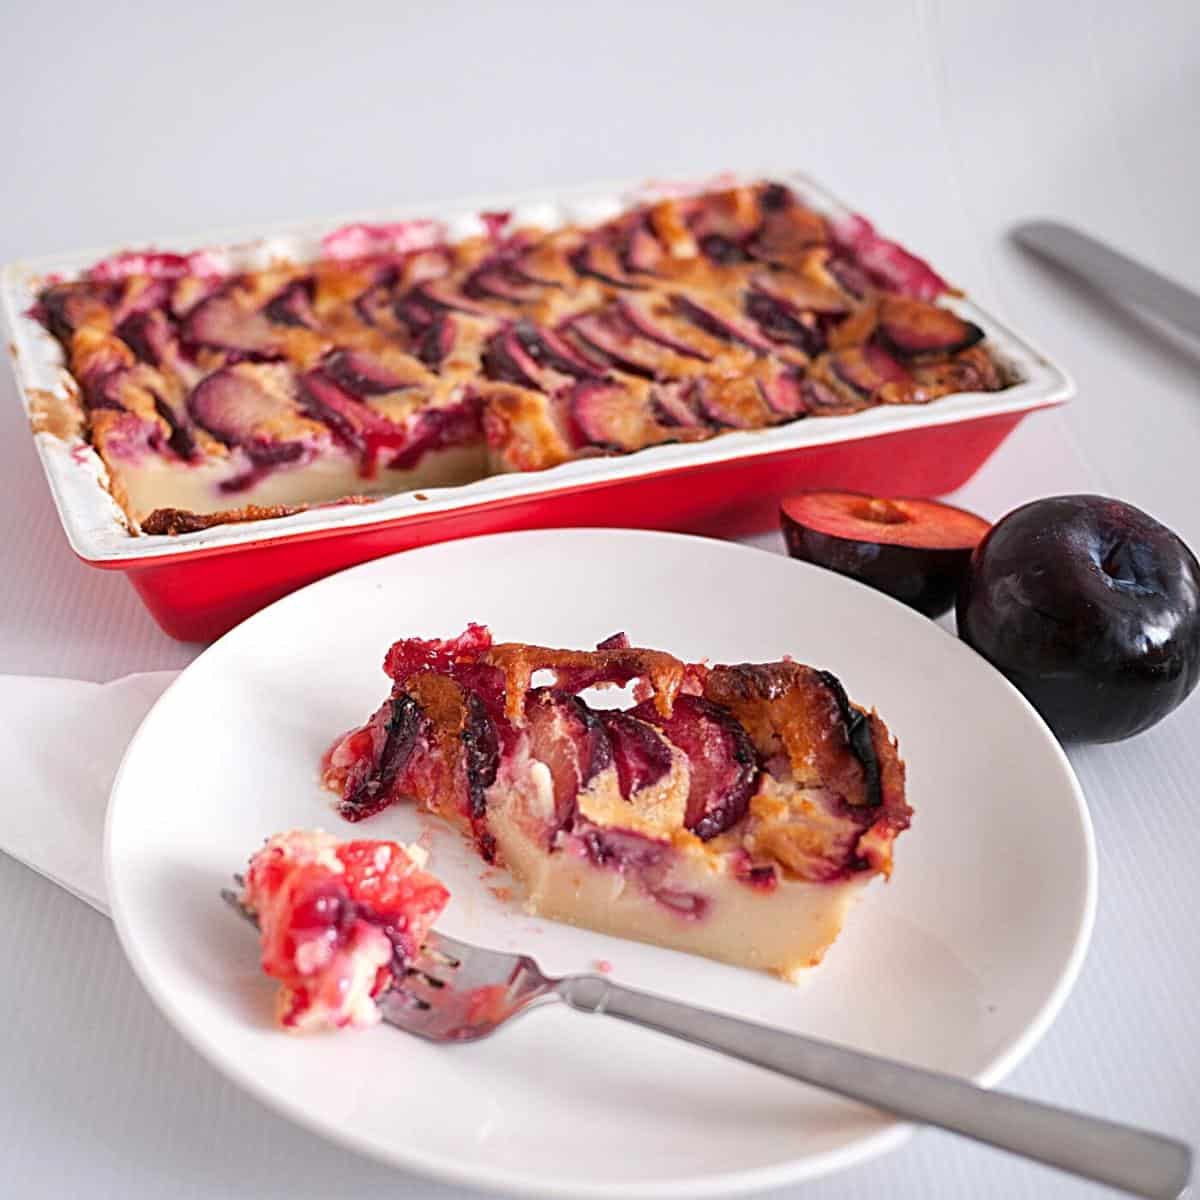 A slice of clafoutis with a fork.